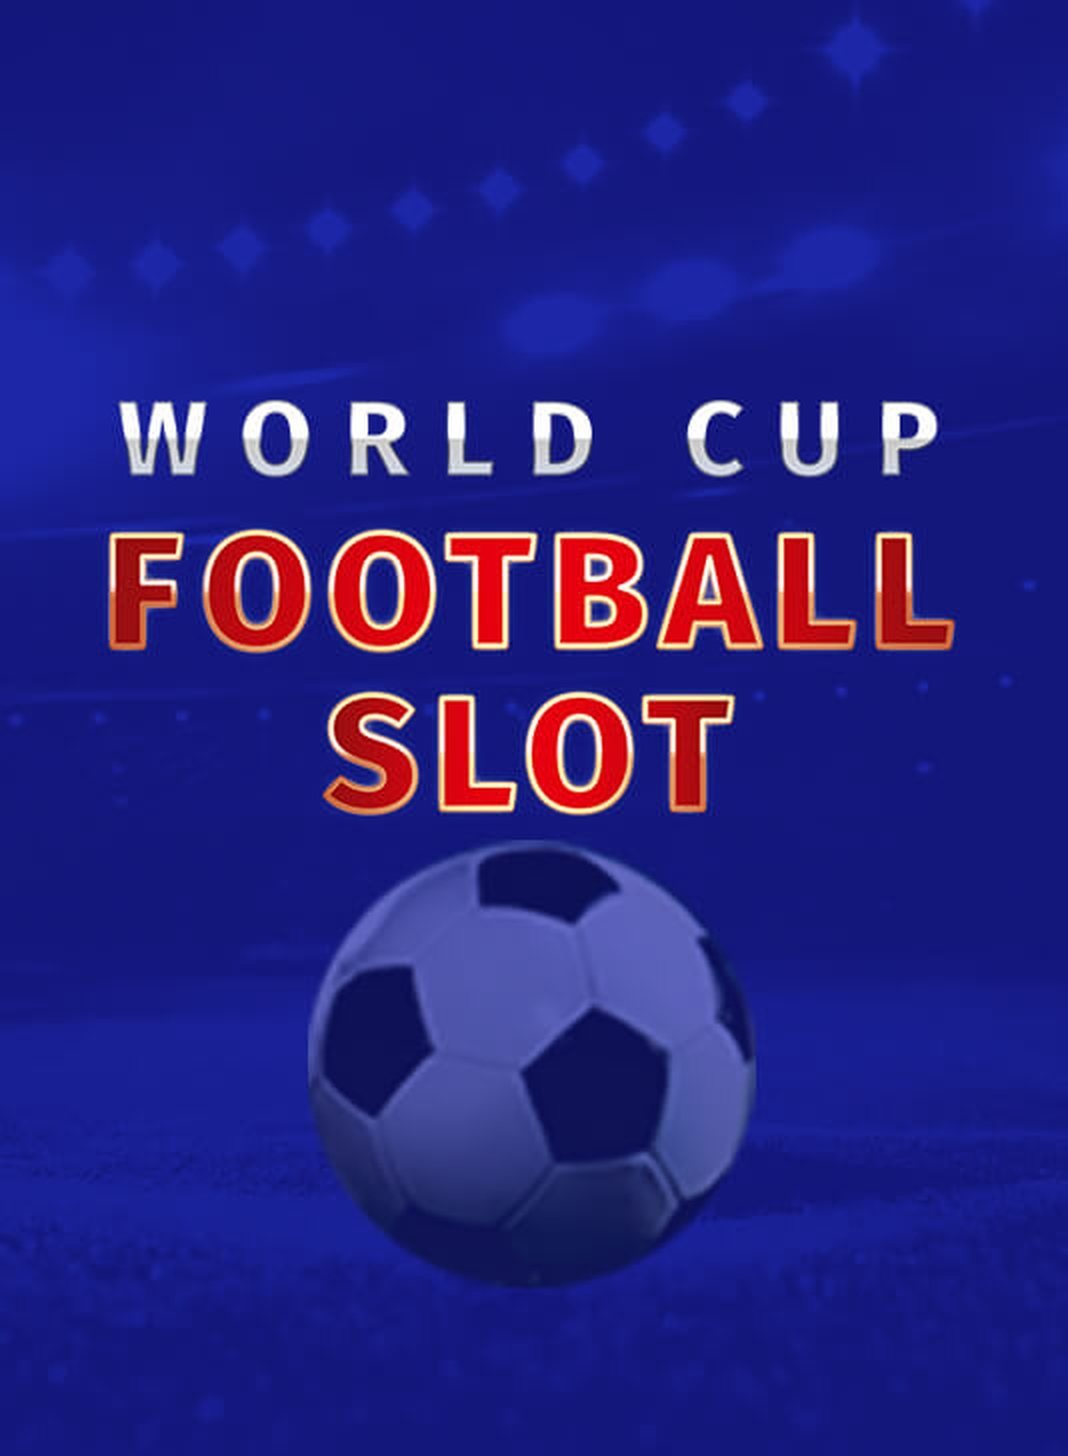 The World Cup Football Slot Online Slot Demo Game by Thunderspin